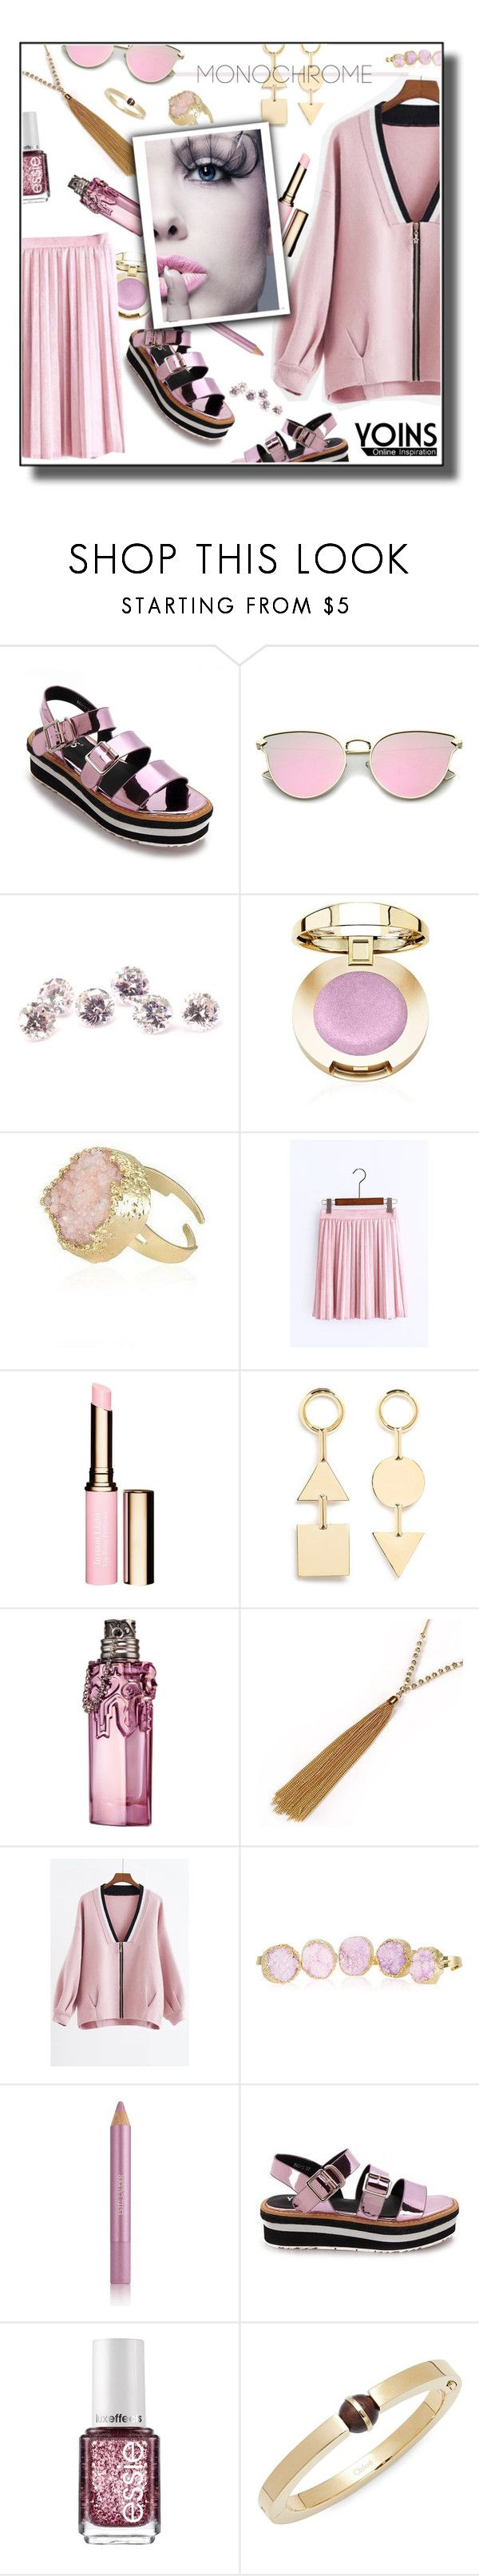 """""""Yoins Pink V-neck Zip Front Closure Knieted Fashion Jacket"""" by tjuli-interior ❤ liked on Polyvore featuring Clarins, Eddie Borgo, Thierry Mugler, Estée Lauder, Essie, Chloé, yoins, yoinscollection and loveyoins"""